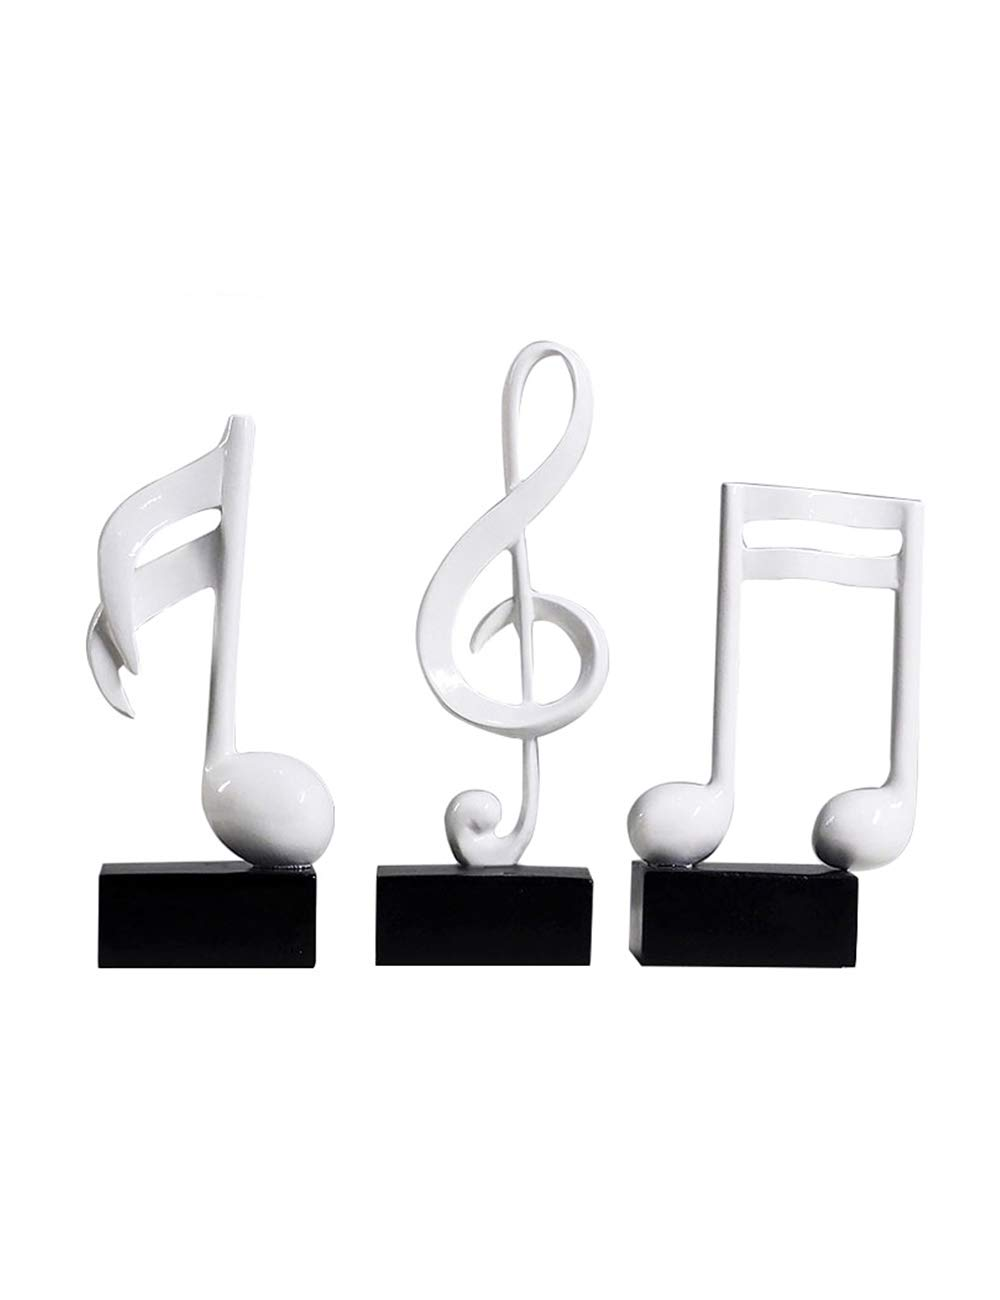 HomeBerry Musical Note Music Note Figurine Statue Sculpture Home Decor Decoration Gift Arts Crafts Hand Painted Polyreisn 19cmH Set of 3 White